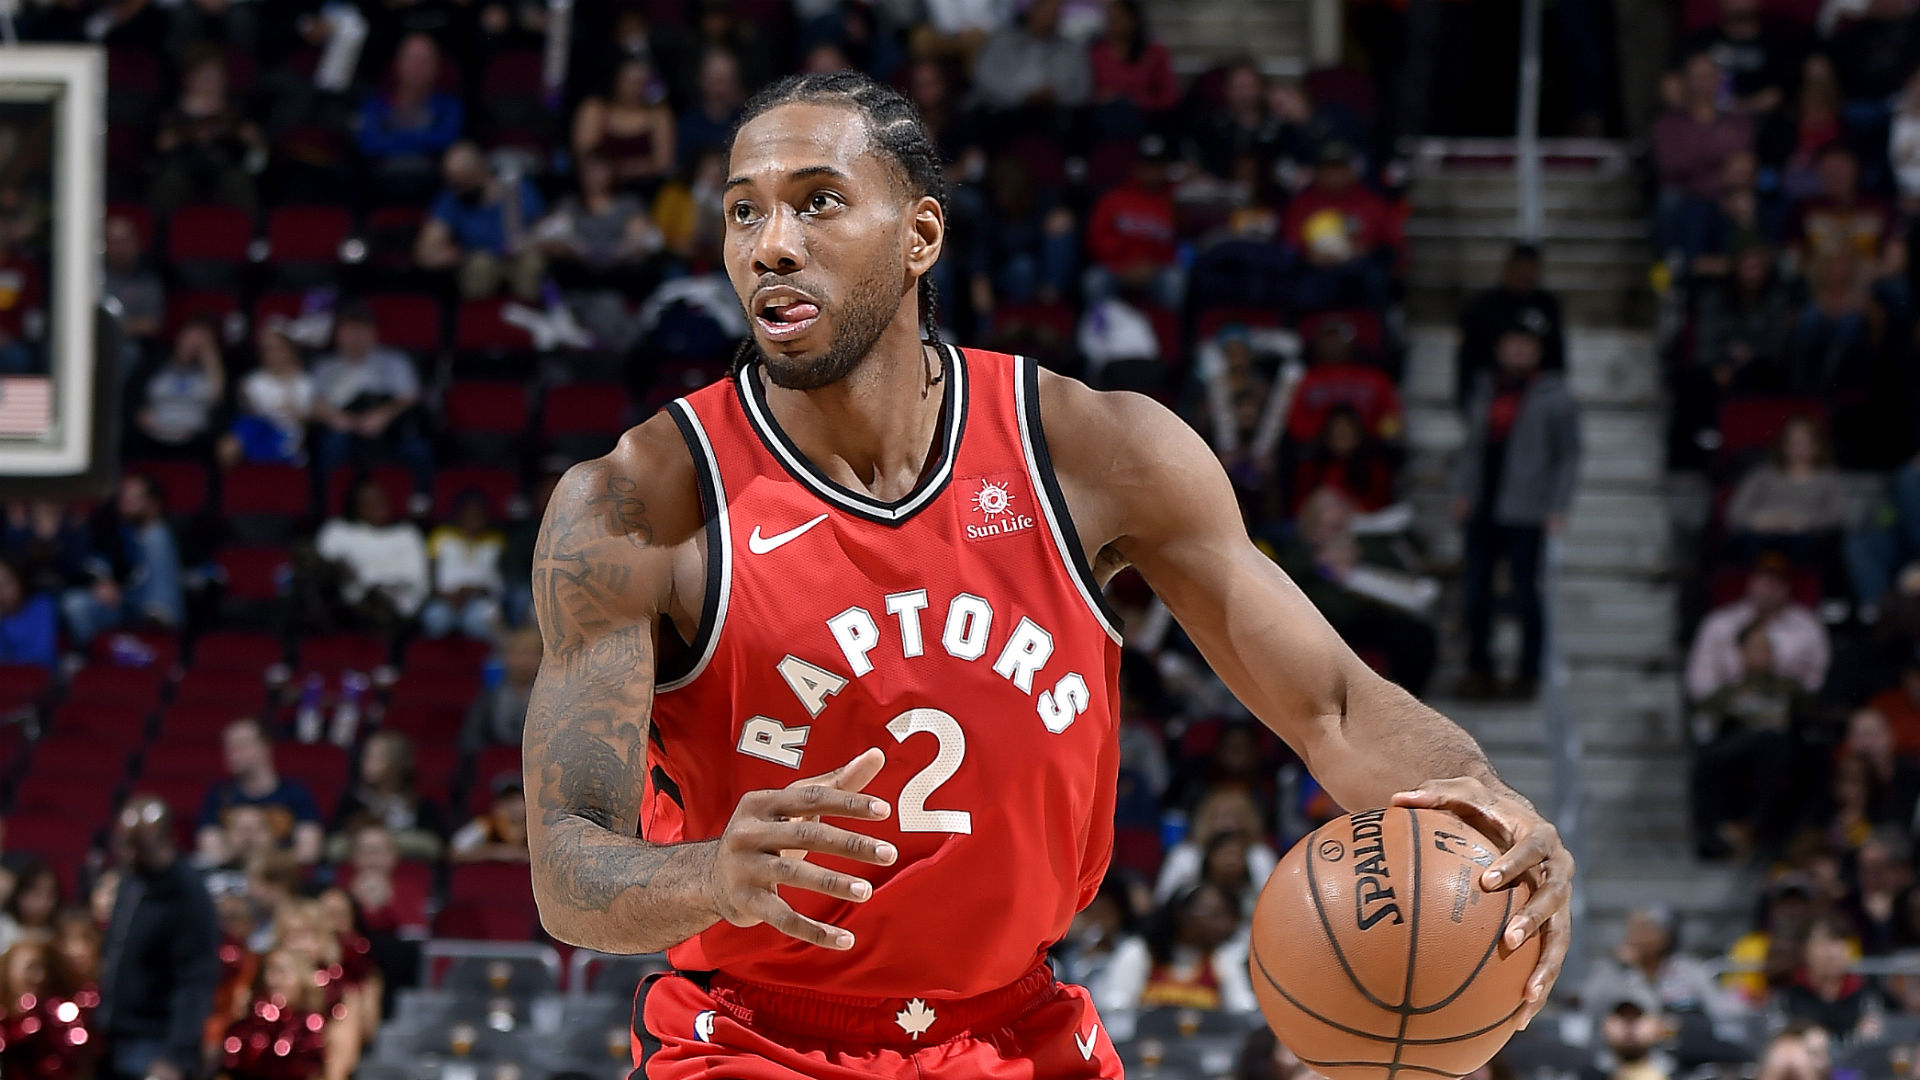 Raptors News: 5 Takeaways From The Toronto Raptors' Win Over The